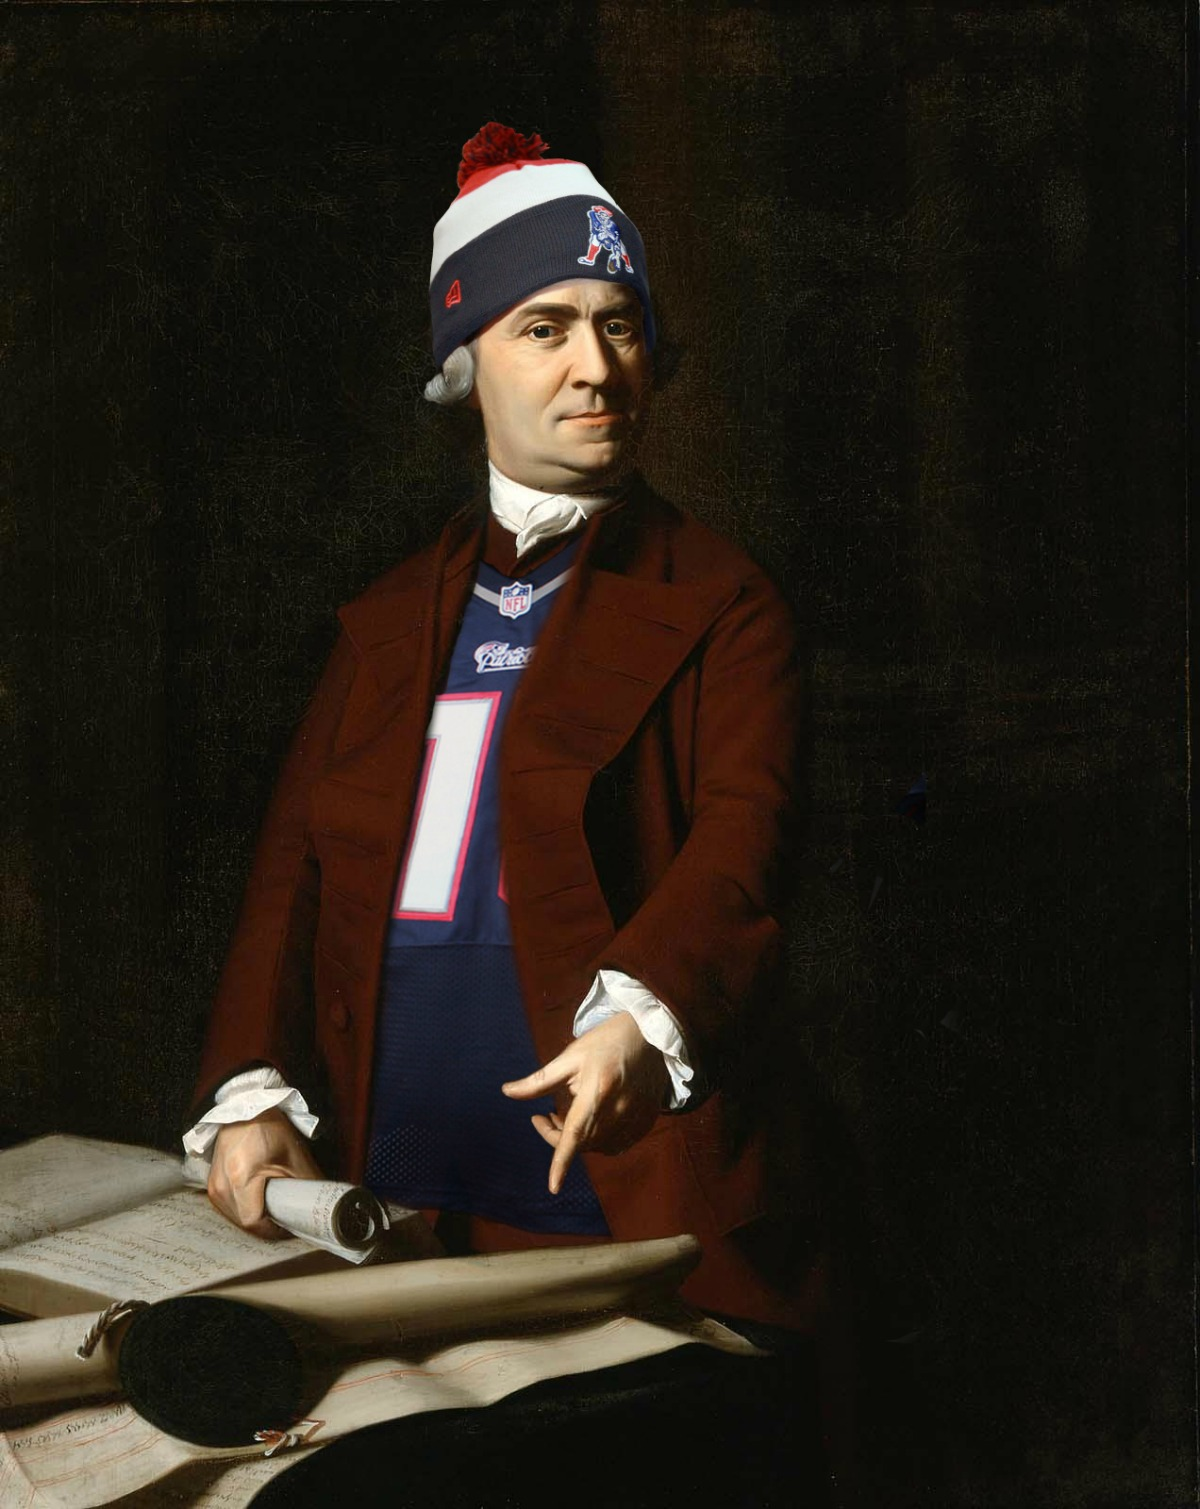 Patriot Sam Adams dons Patriots&#x27 gear as part of a contest between Boston's Museum of Fine Arts and Atlanta's High Museum of Art